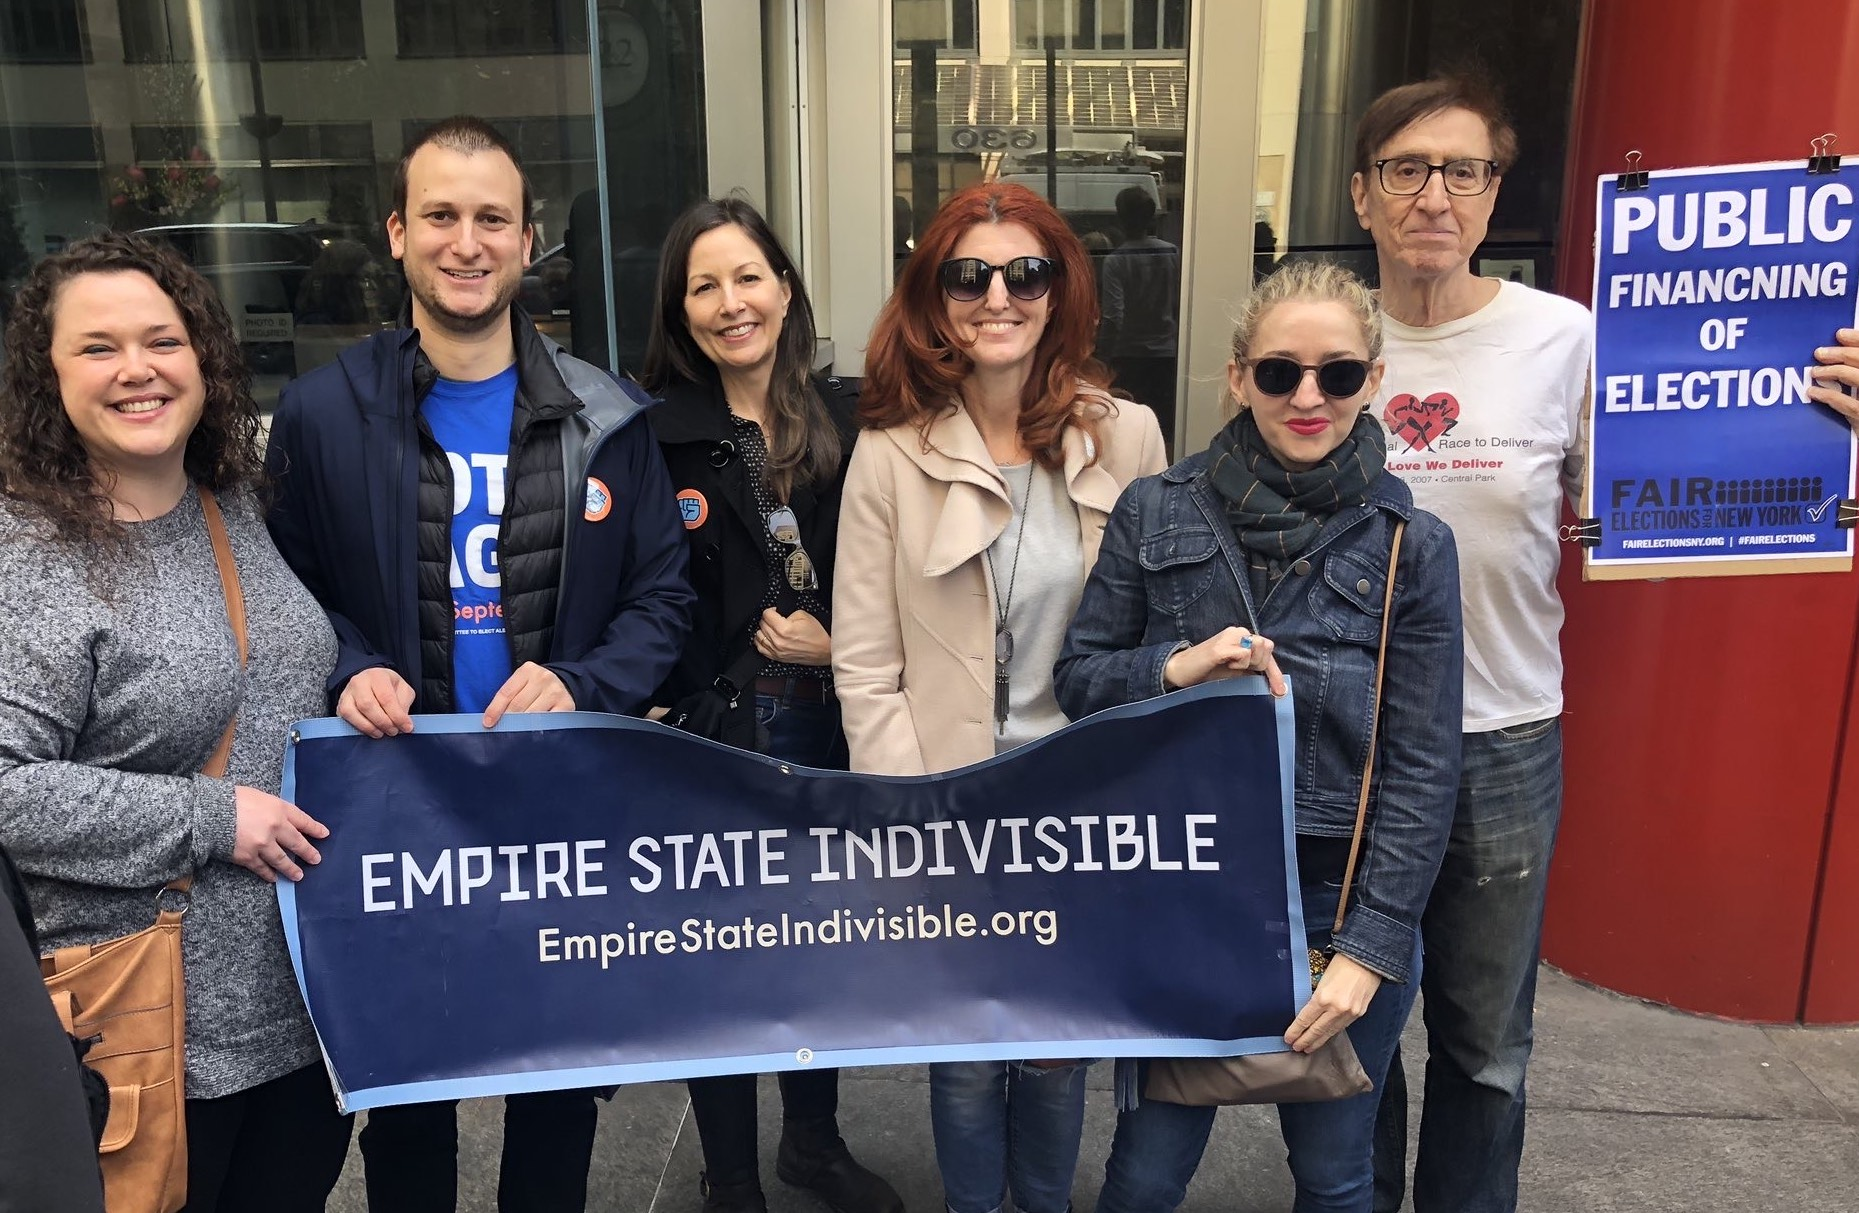 Empire State Indivisible